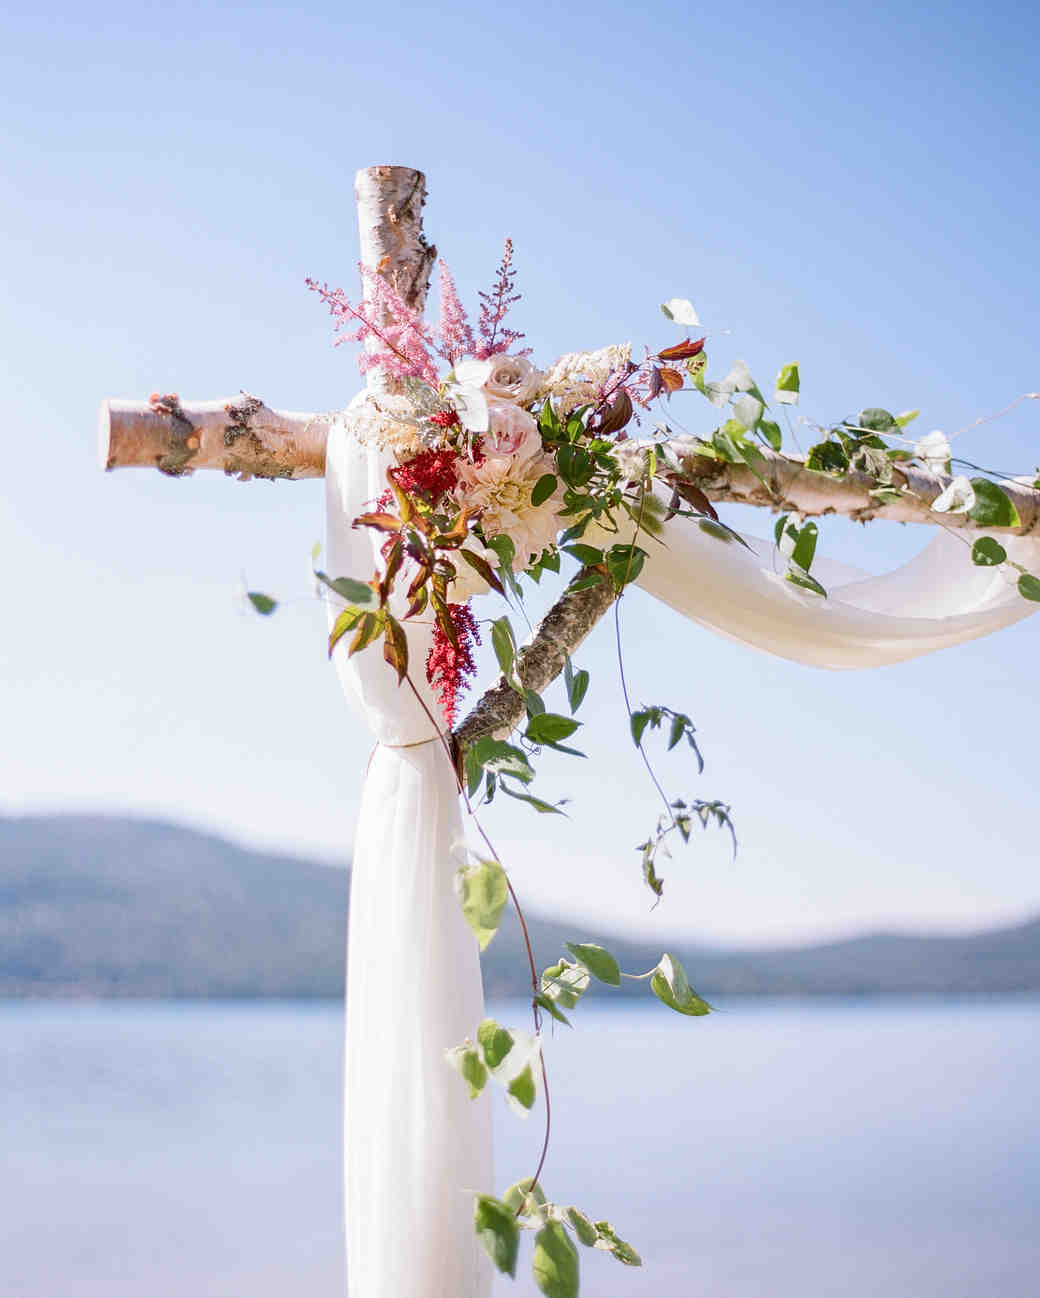 Rustic Wedding Arch with Red and Pink Flowers and White Fabric